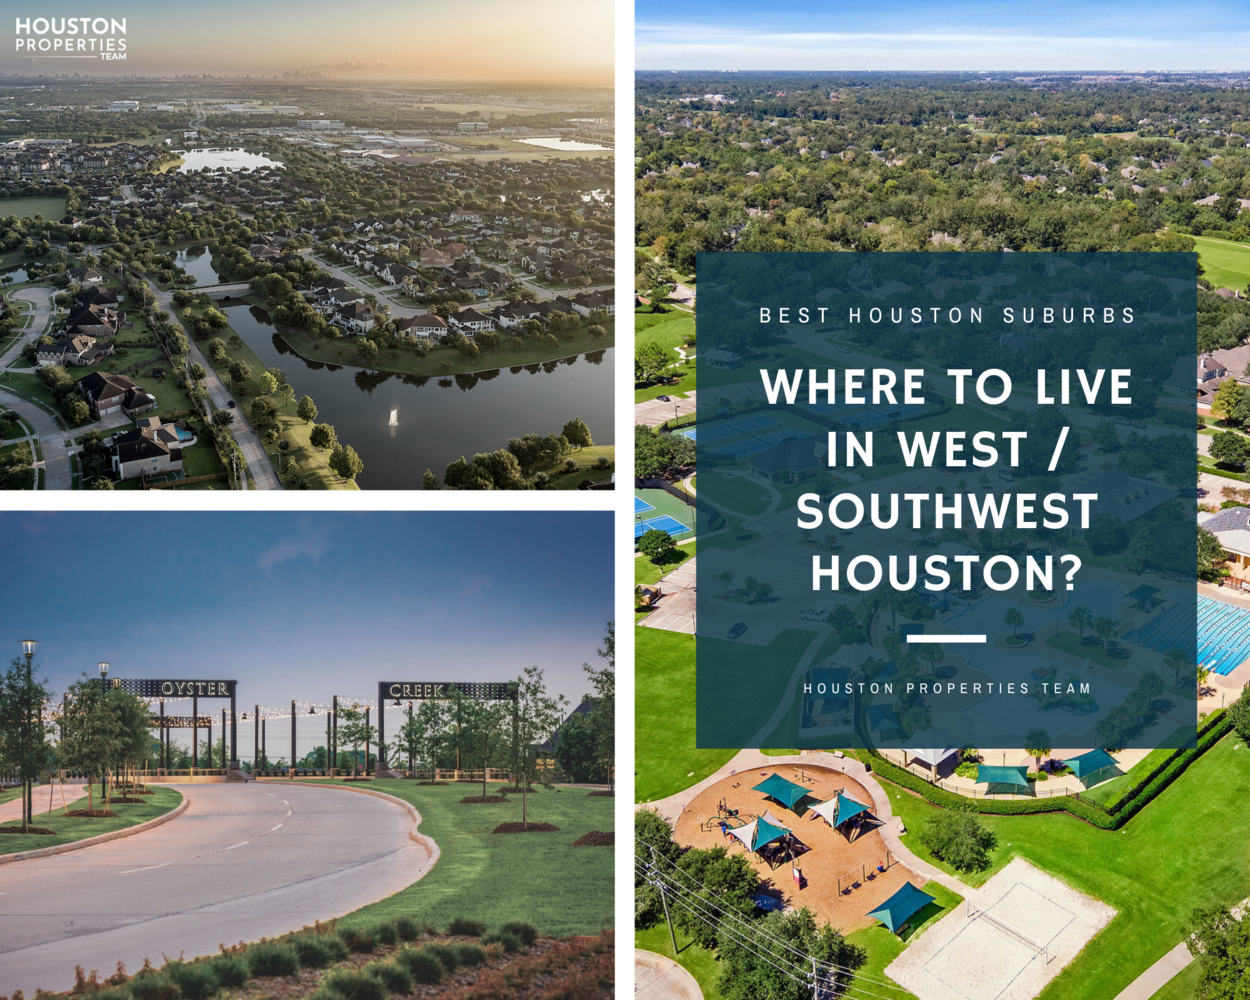 How Much Income You Need To Buy A Home In West / Southwest Houston